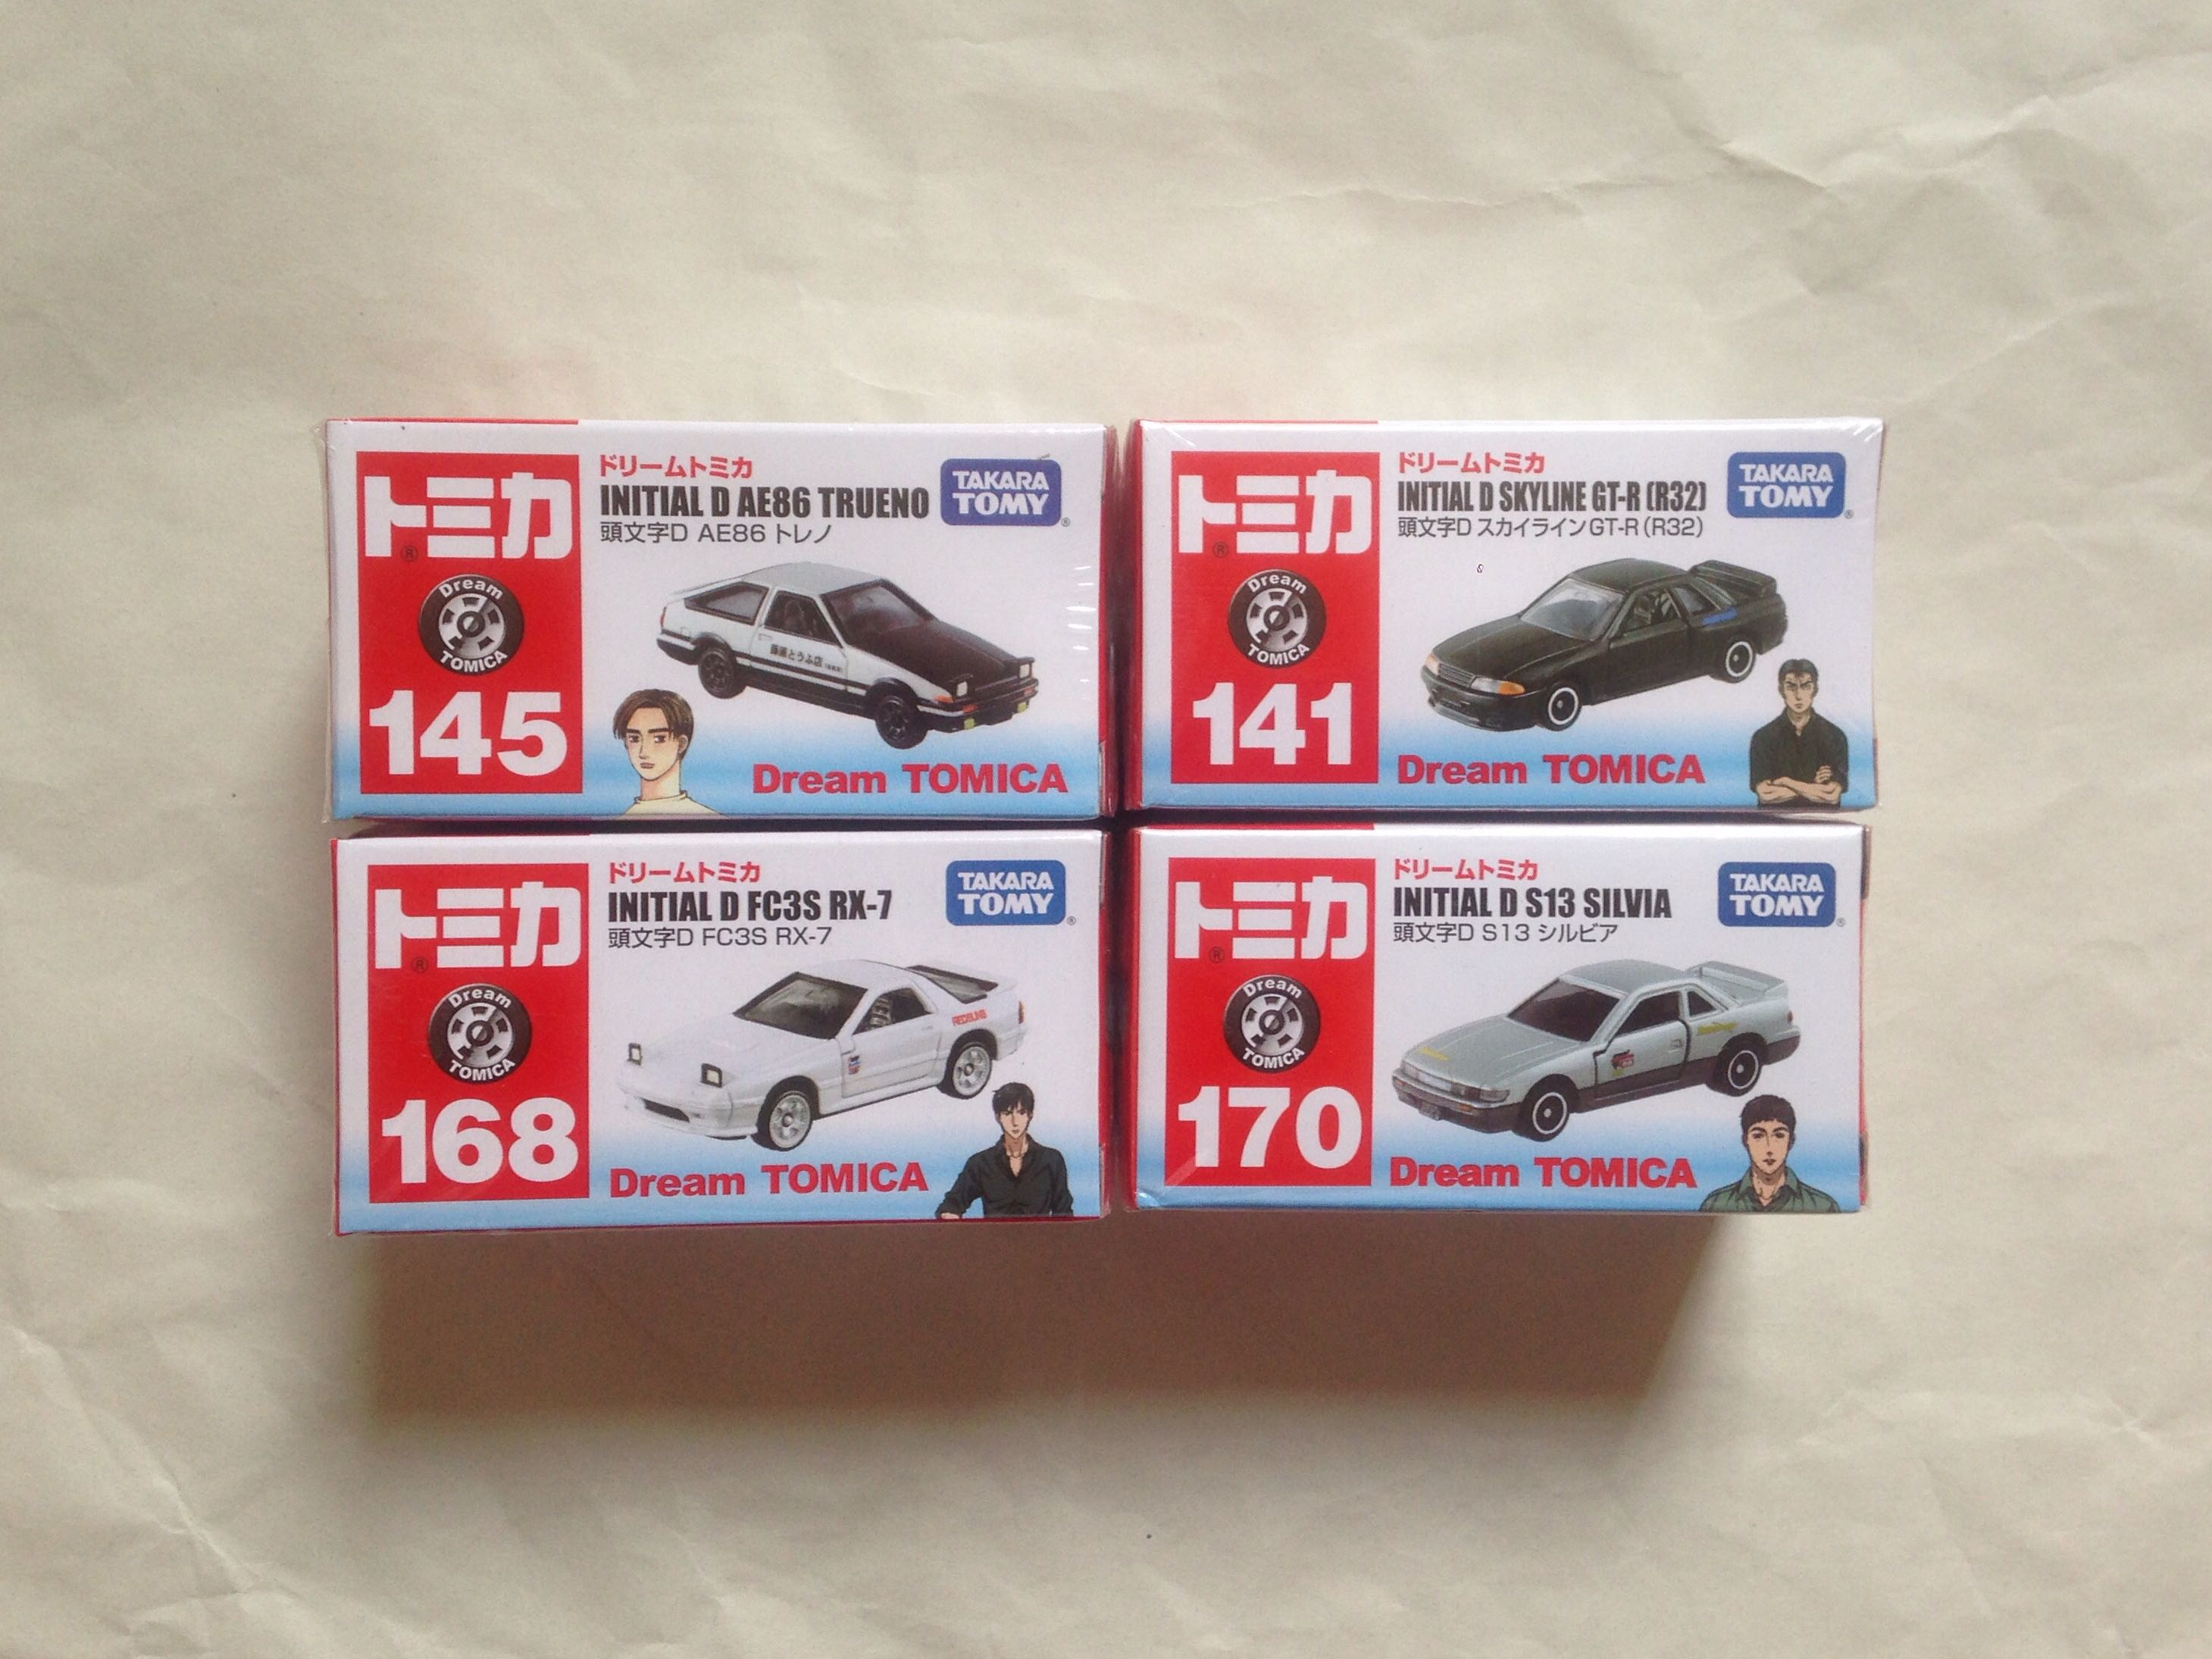 Tomica Lot Initial D Set Of 4 Toys Games Others On Carousell Skyline Gt Rr32 No 141 Dream